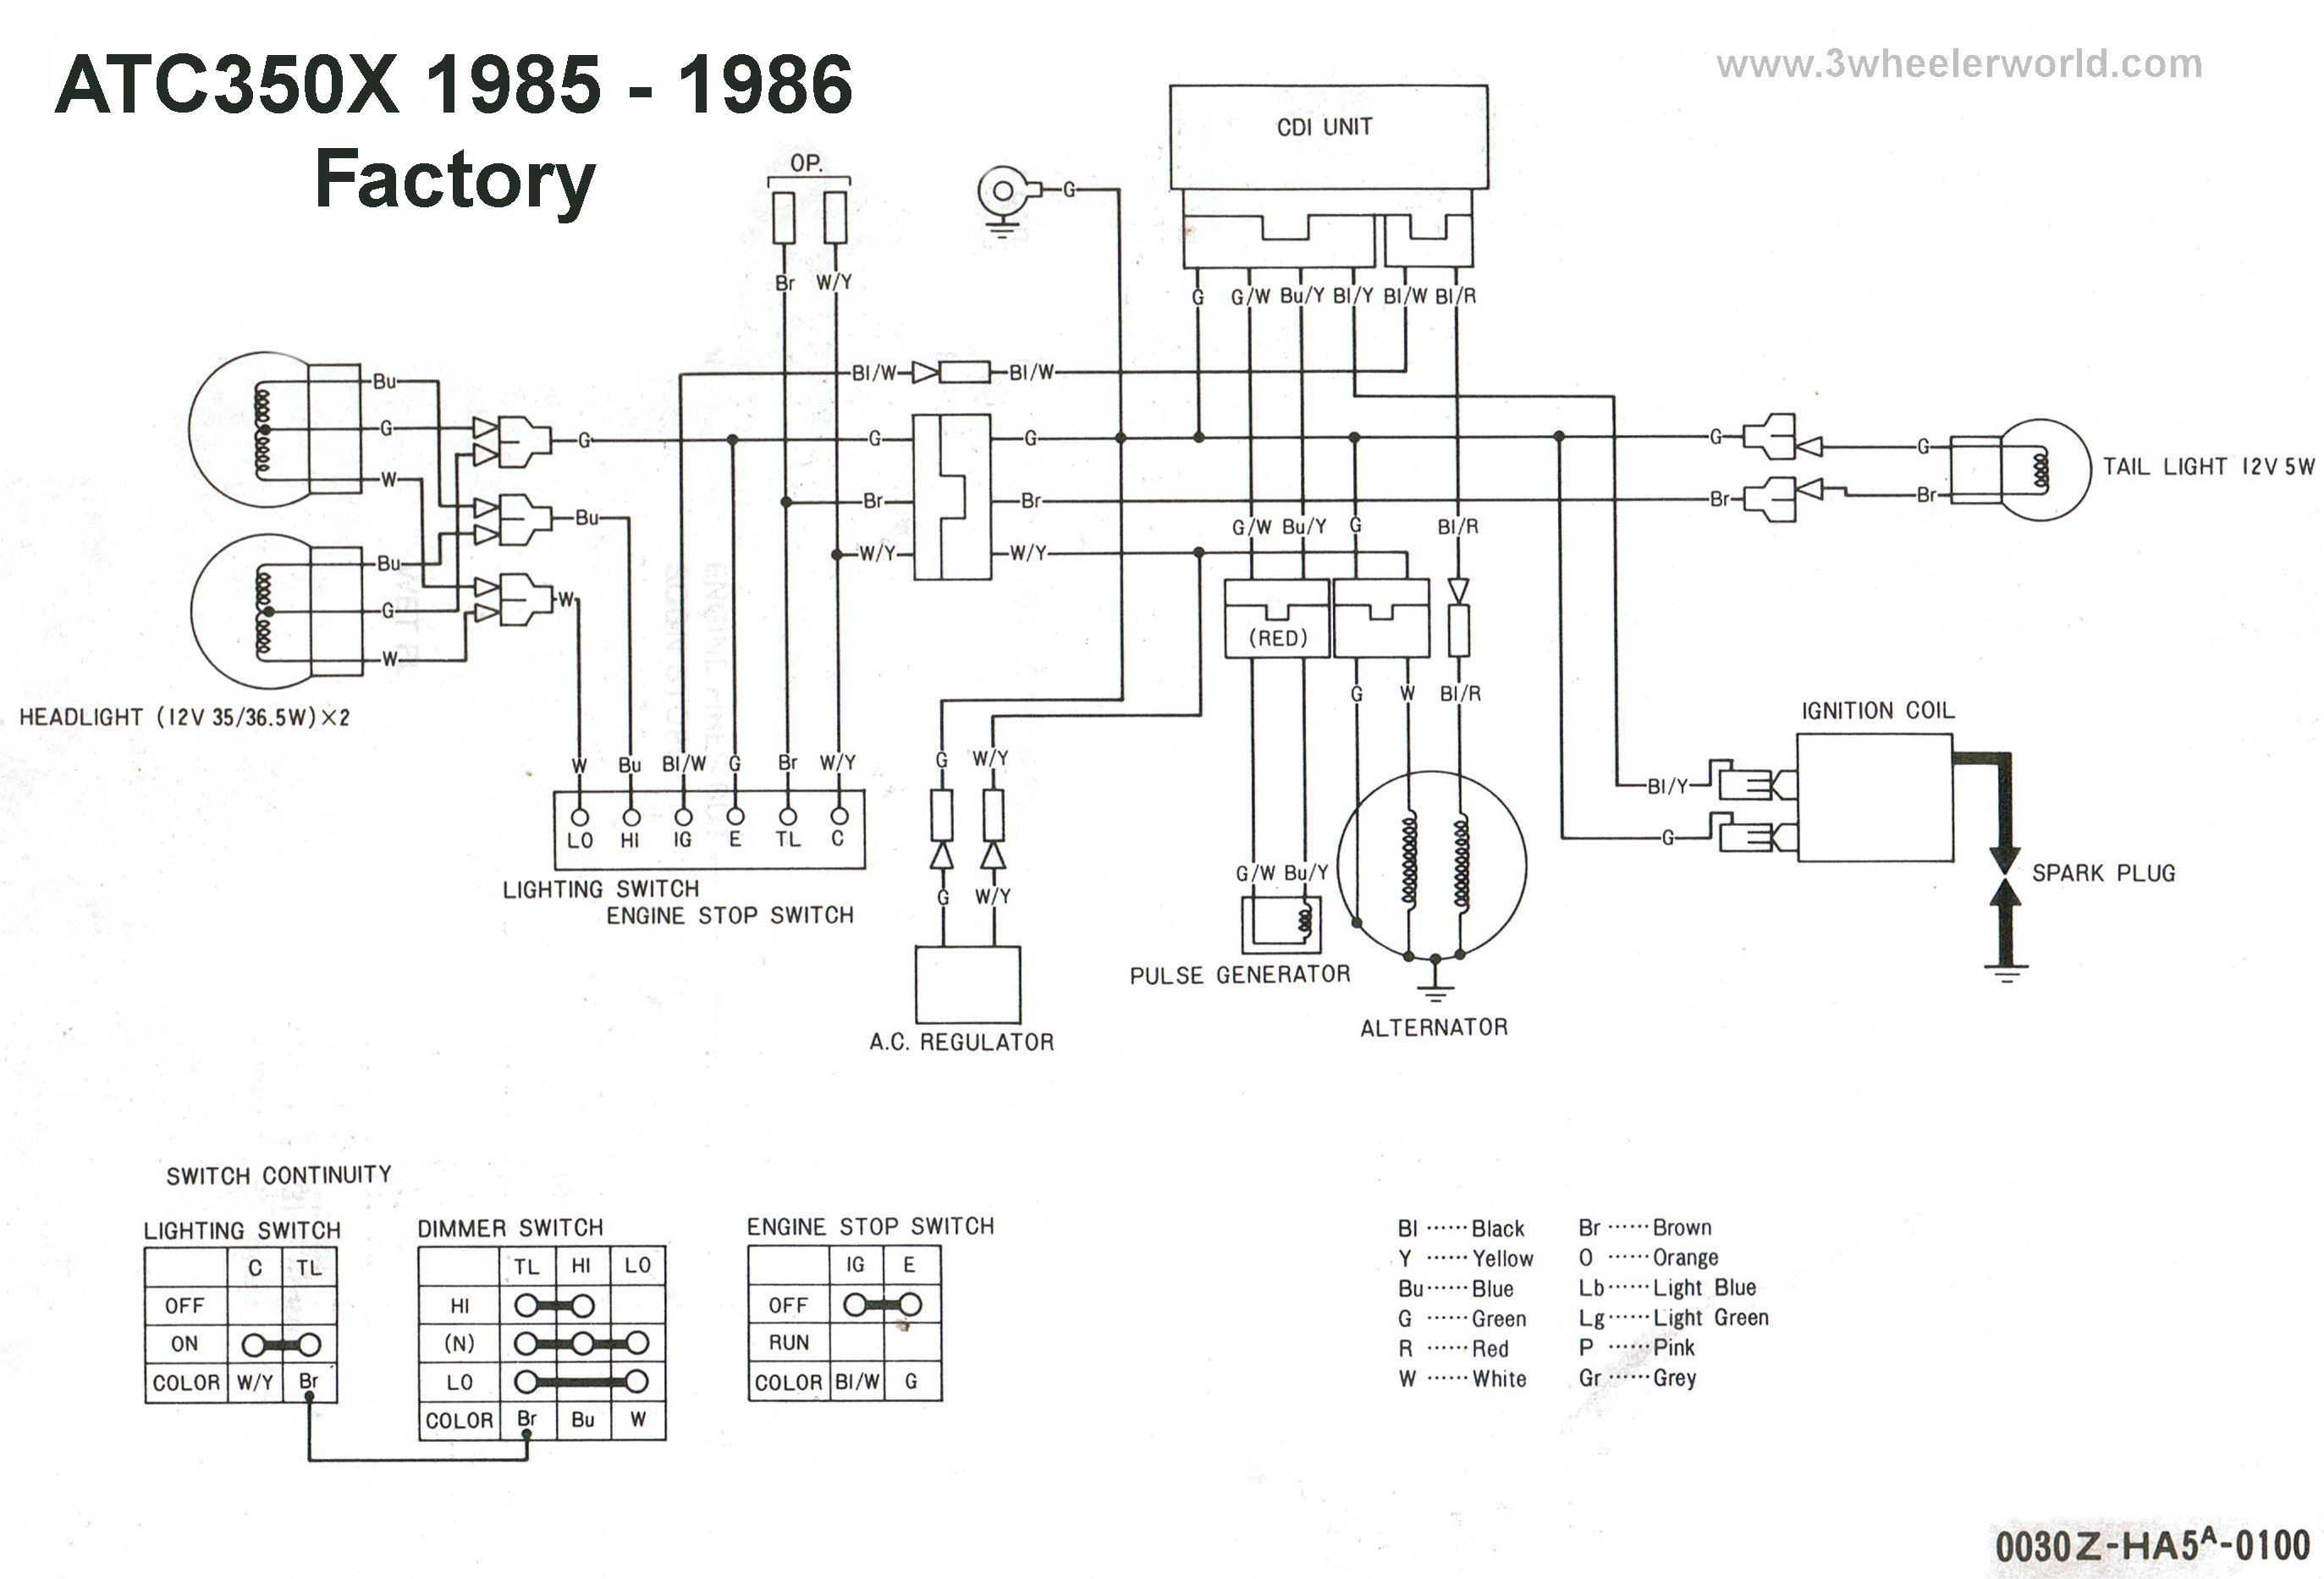 ATC350Xx85Thru86 3 wheeler world tech help honda wiring diagrams 1993 honda fourtrax 300 wiring diagram at fashall.co